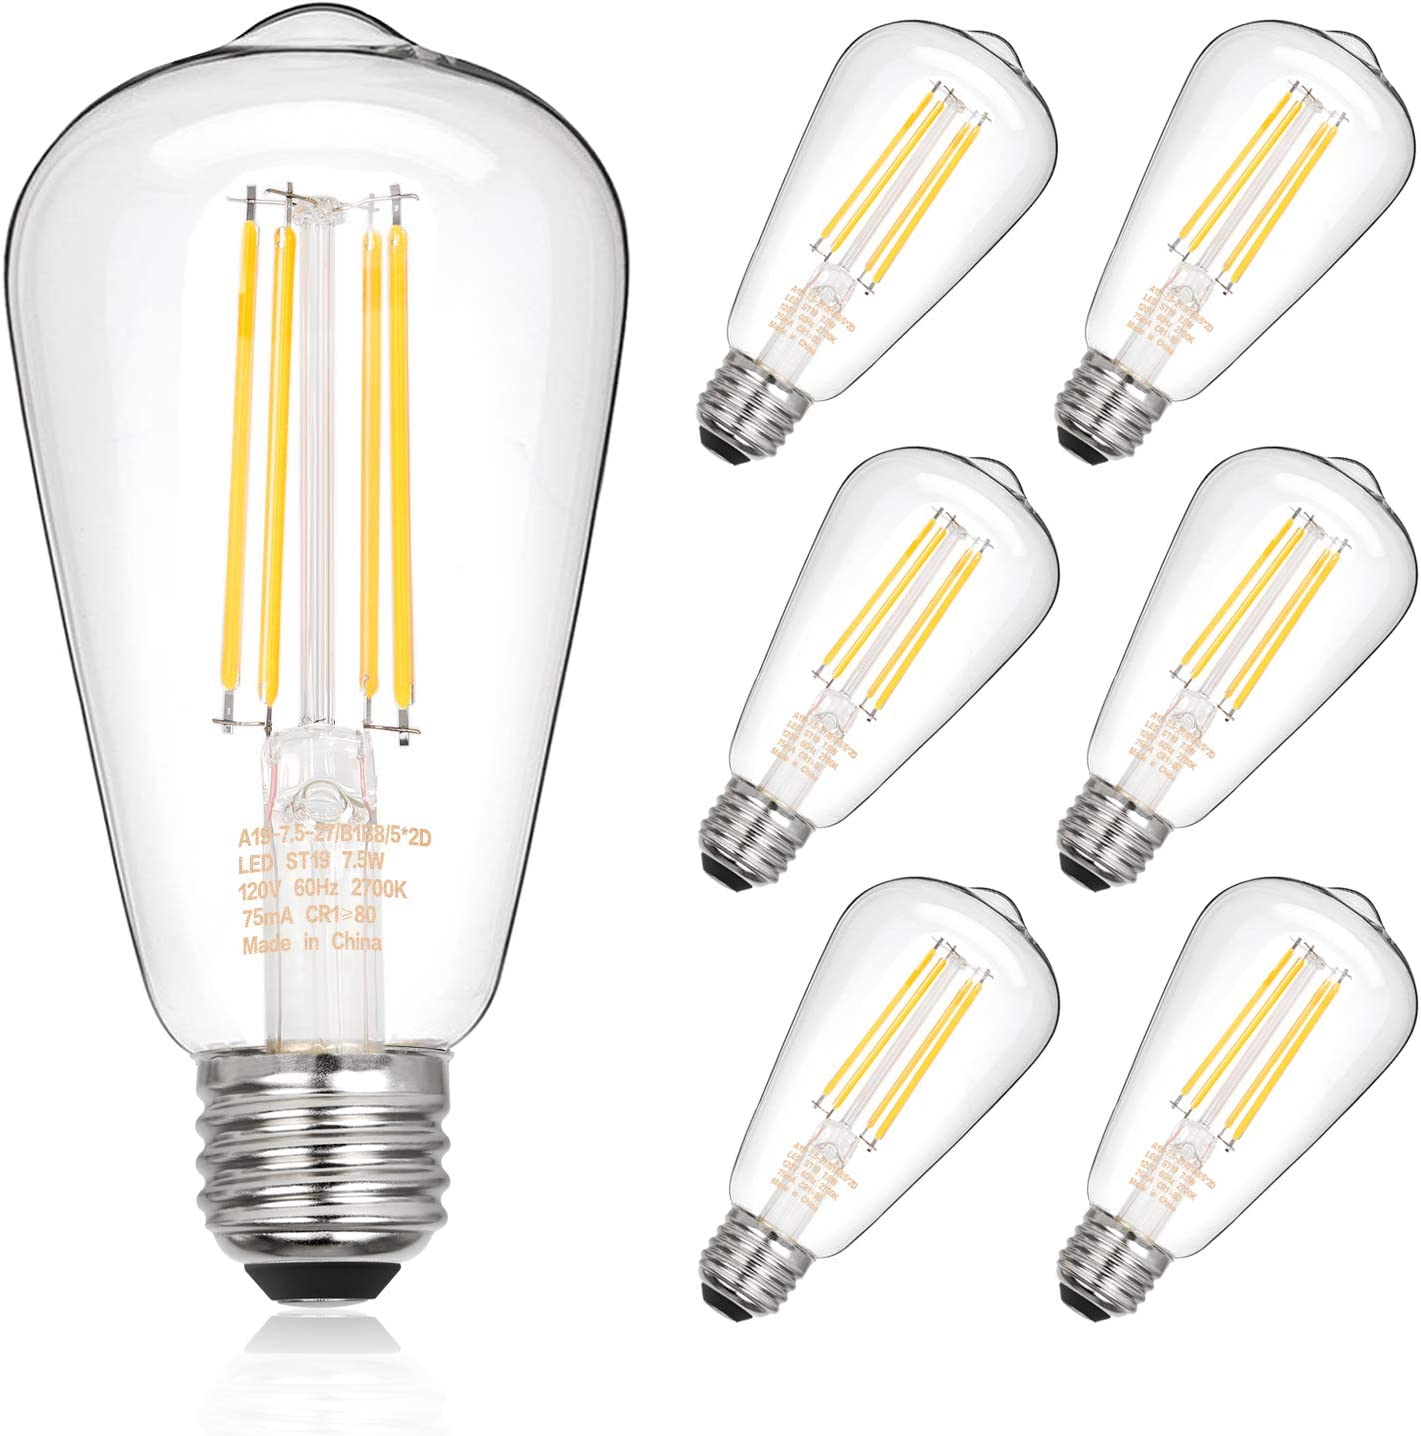 Dimmable Vintage LED Edison Bulbs 60W 7.5W 800lm Equivalent Limited Special Max 63% OFF Price